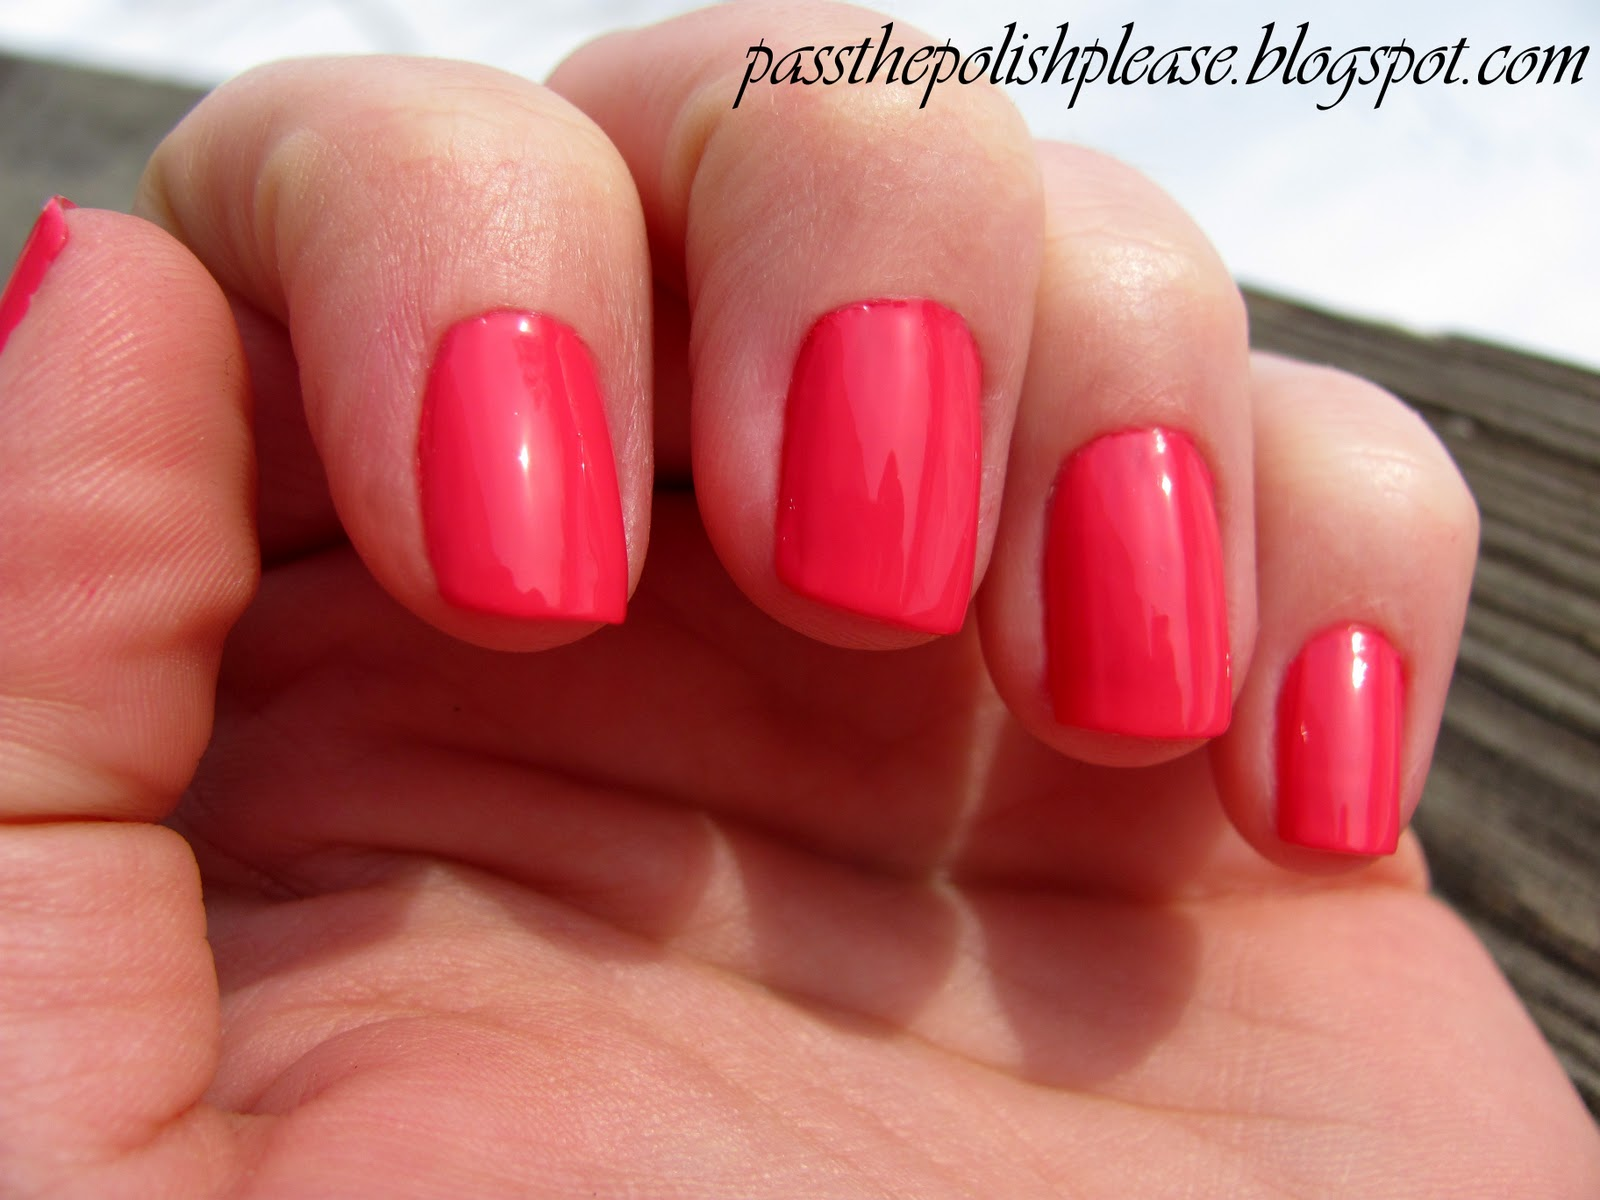 pass the polish please!: Baby Shower Manicure